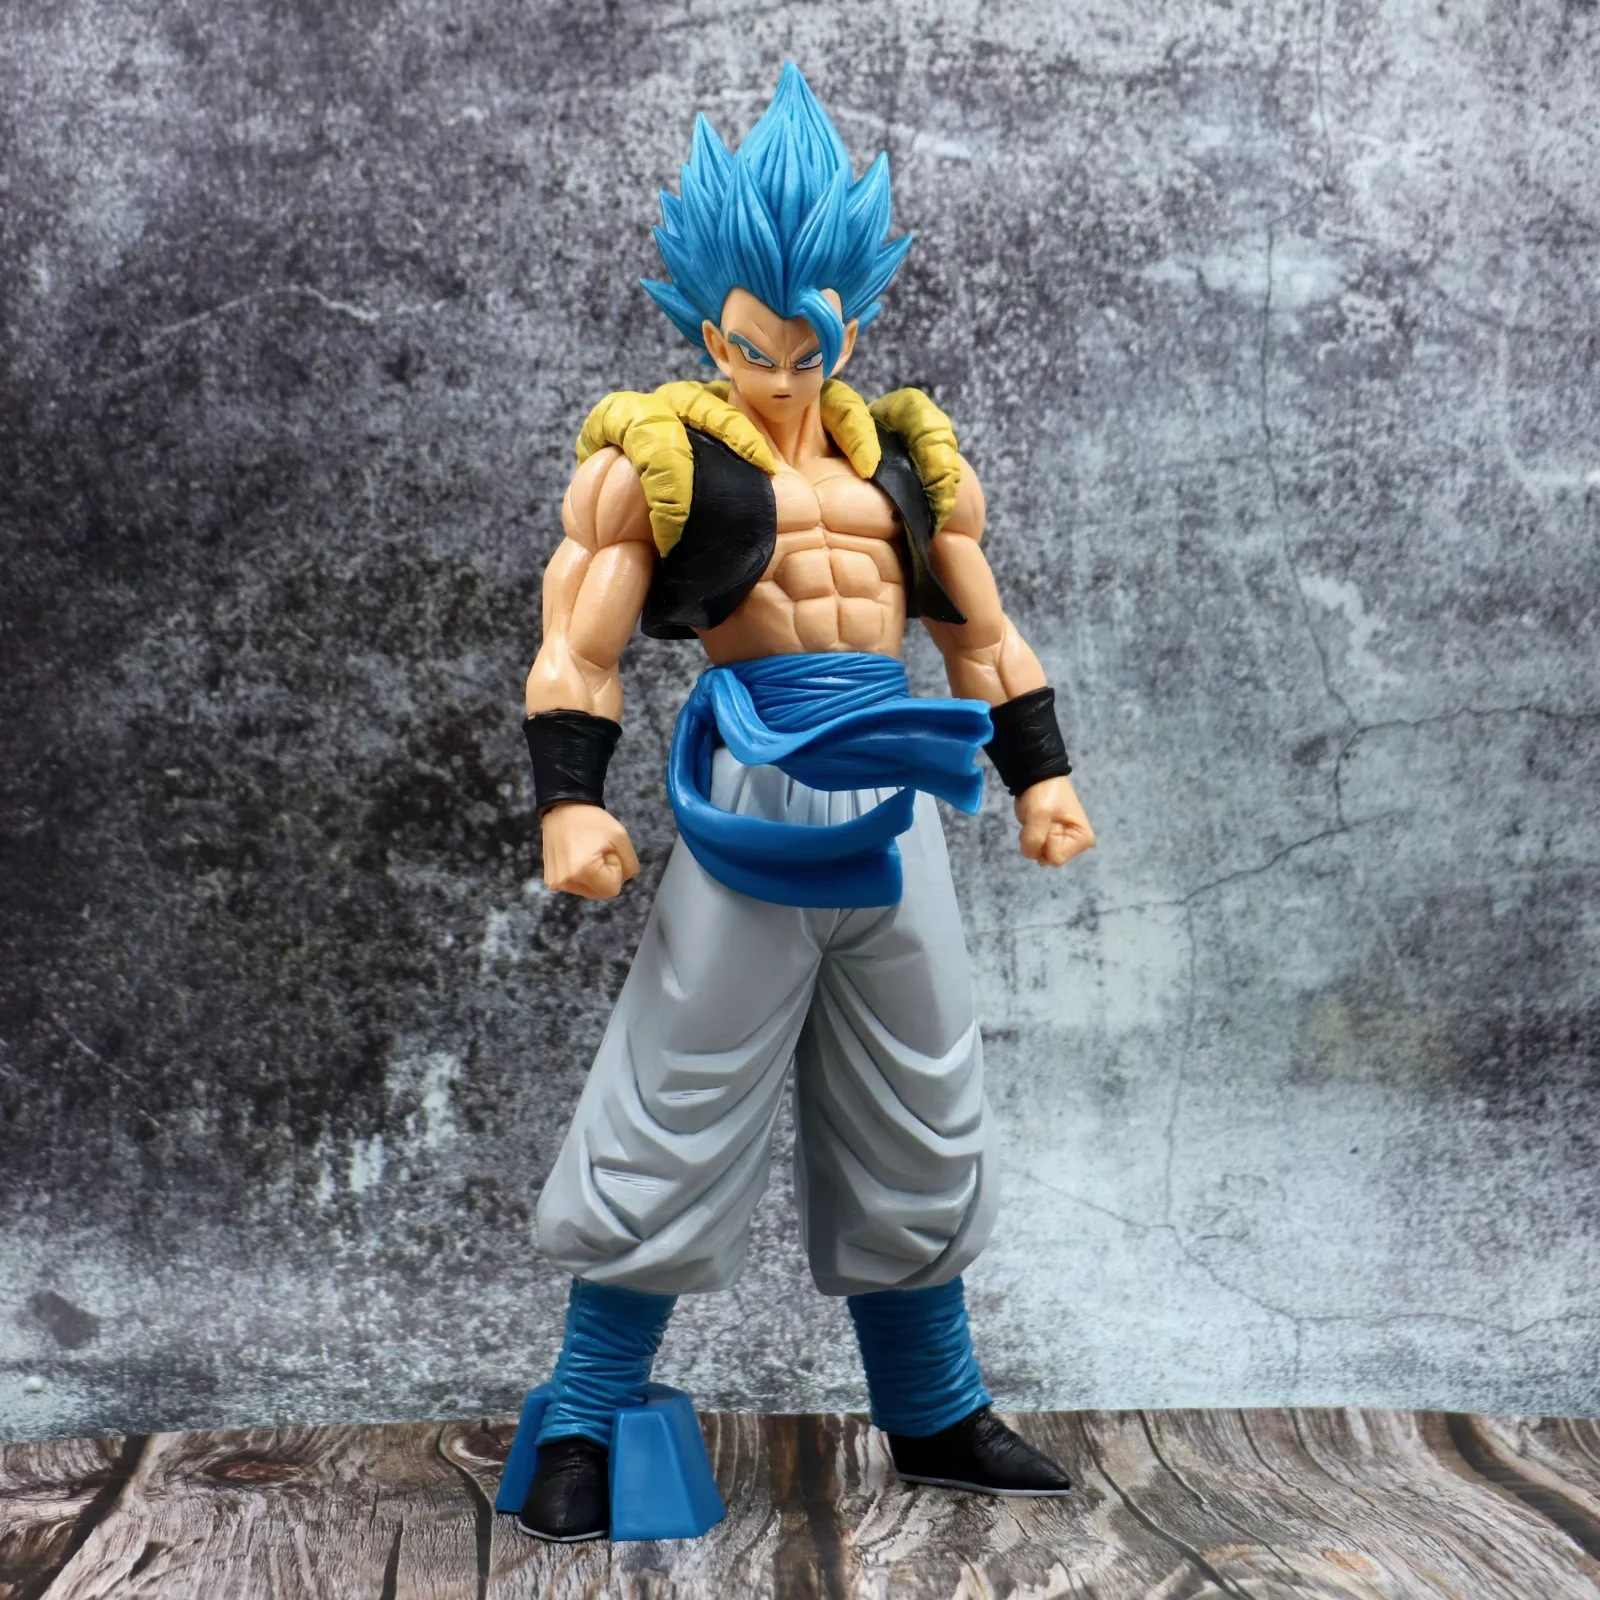 Super Collectible Statues FighterZ Dragon Ball Z